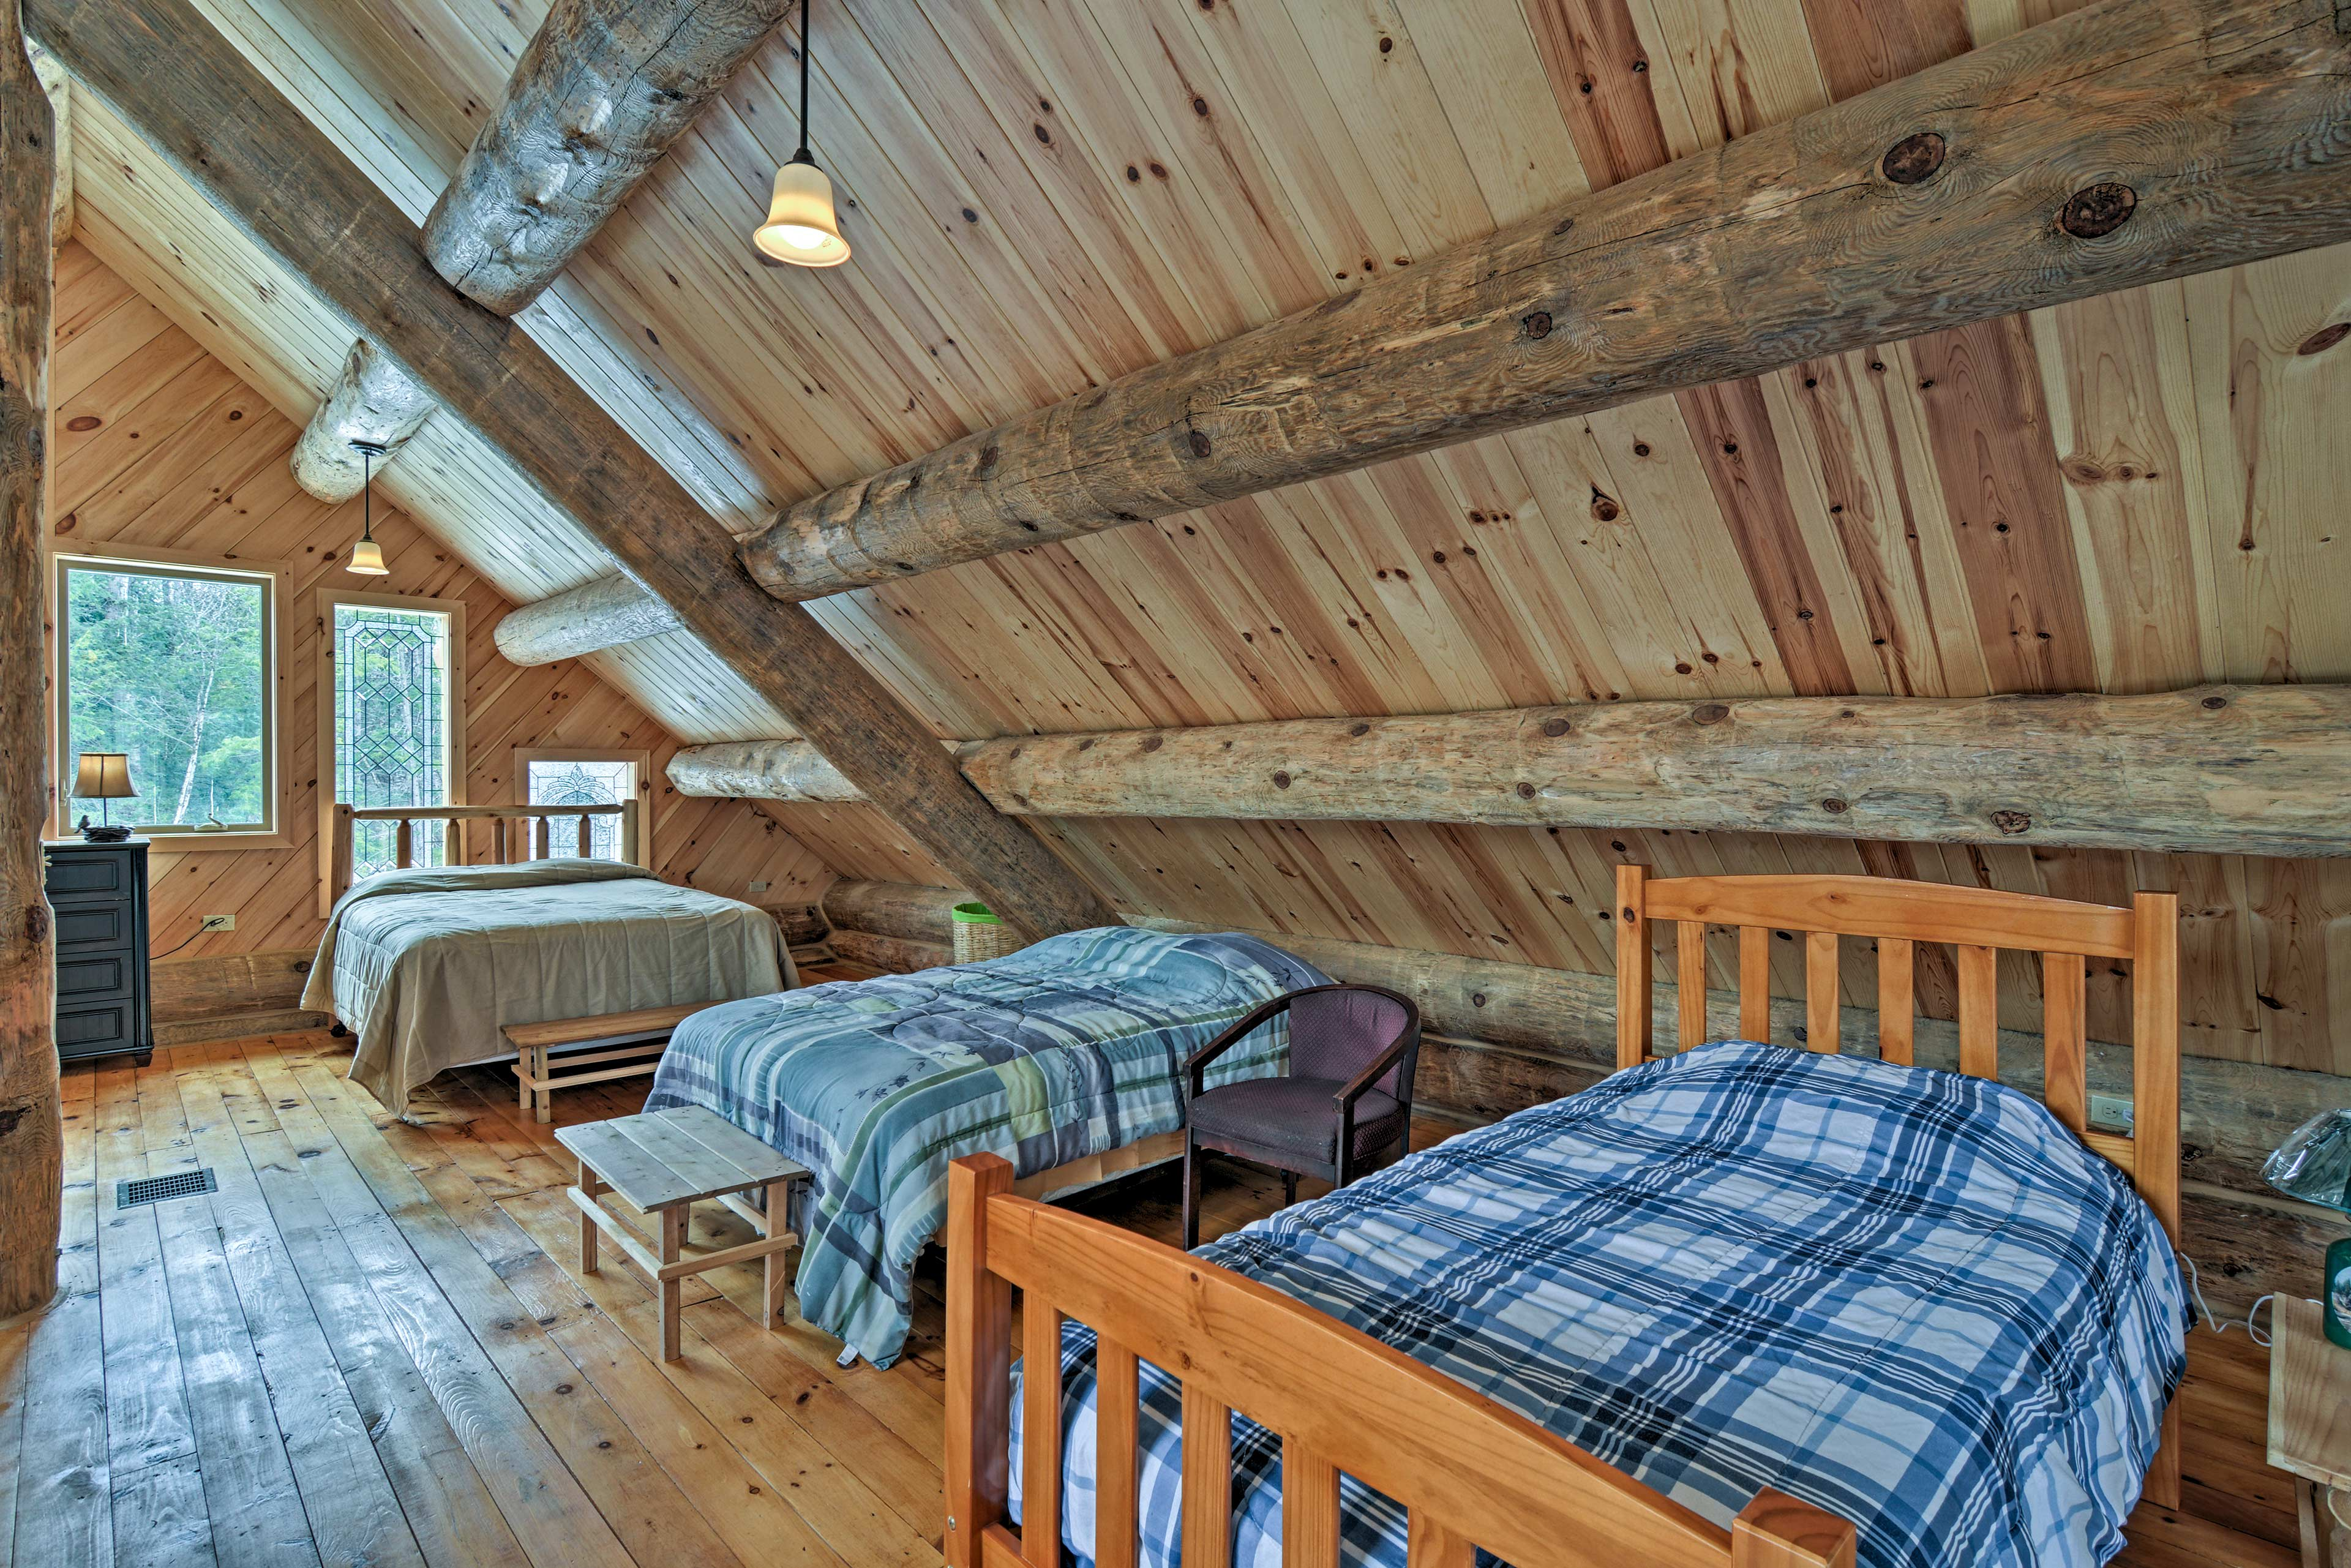 Head up to the loft where there's an assortment of sleeping arrangements!